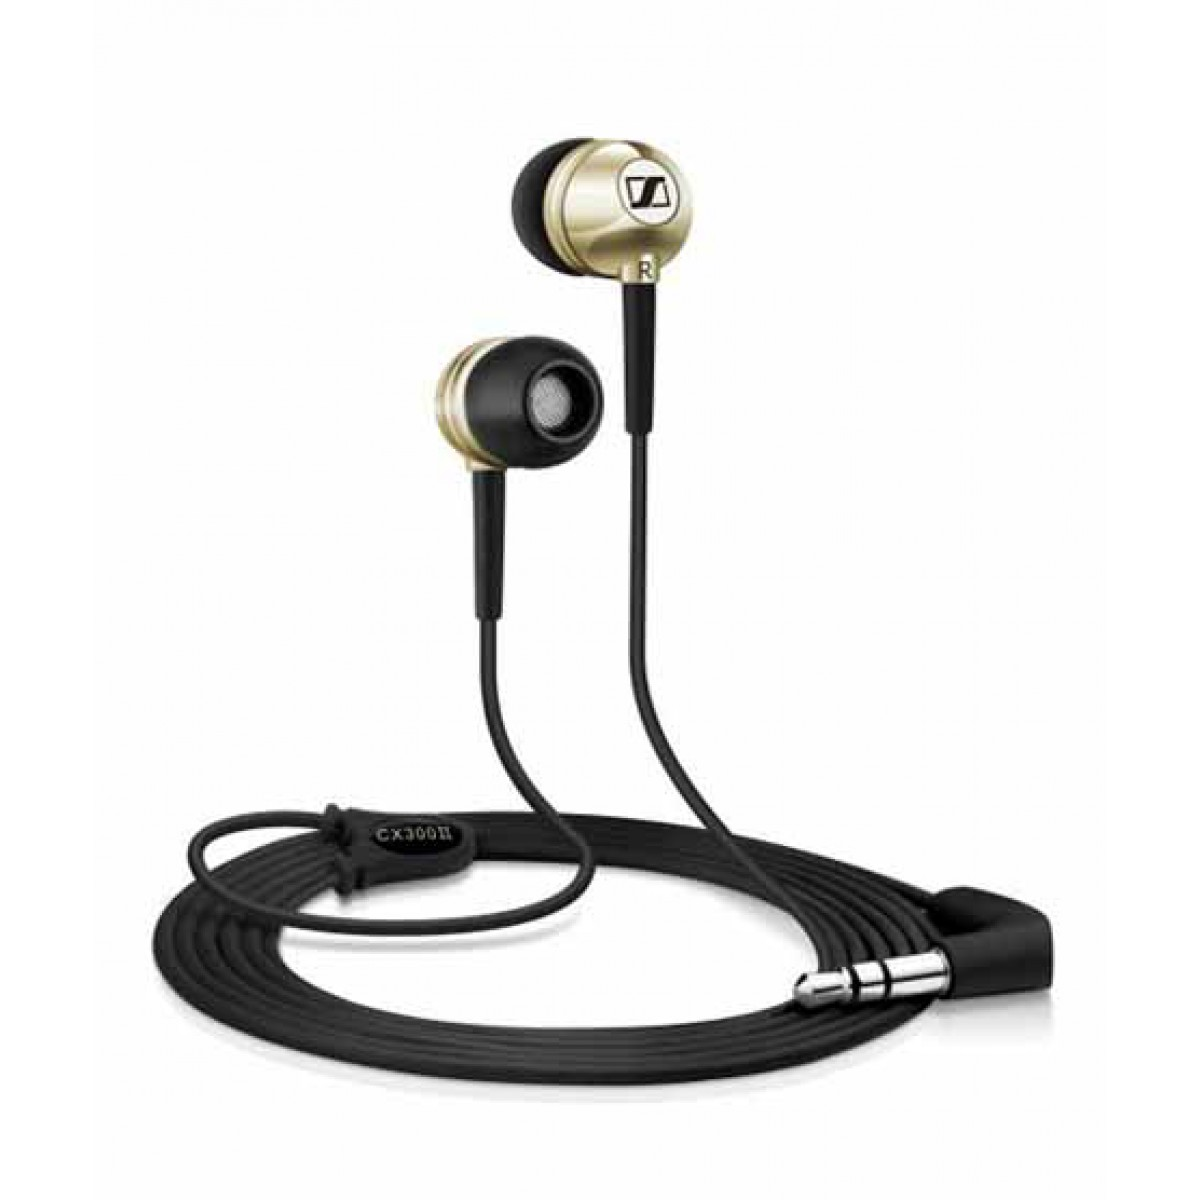 SENNHEISER EARPHONE (CX-300II)